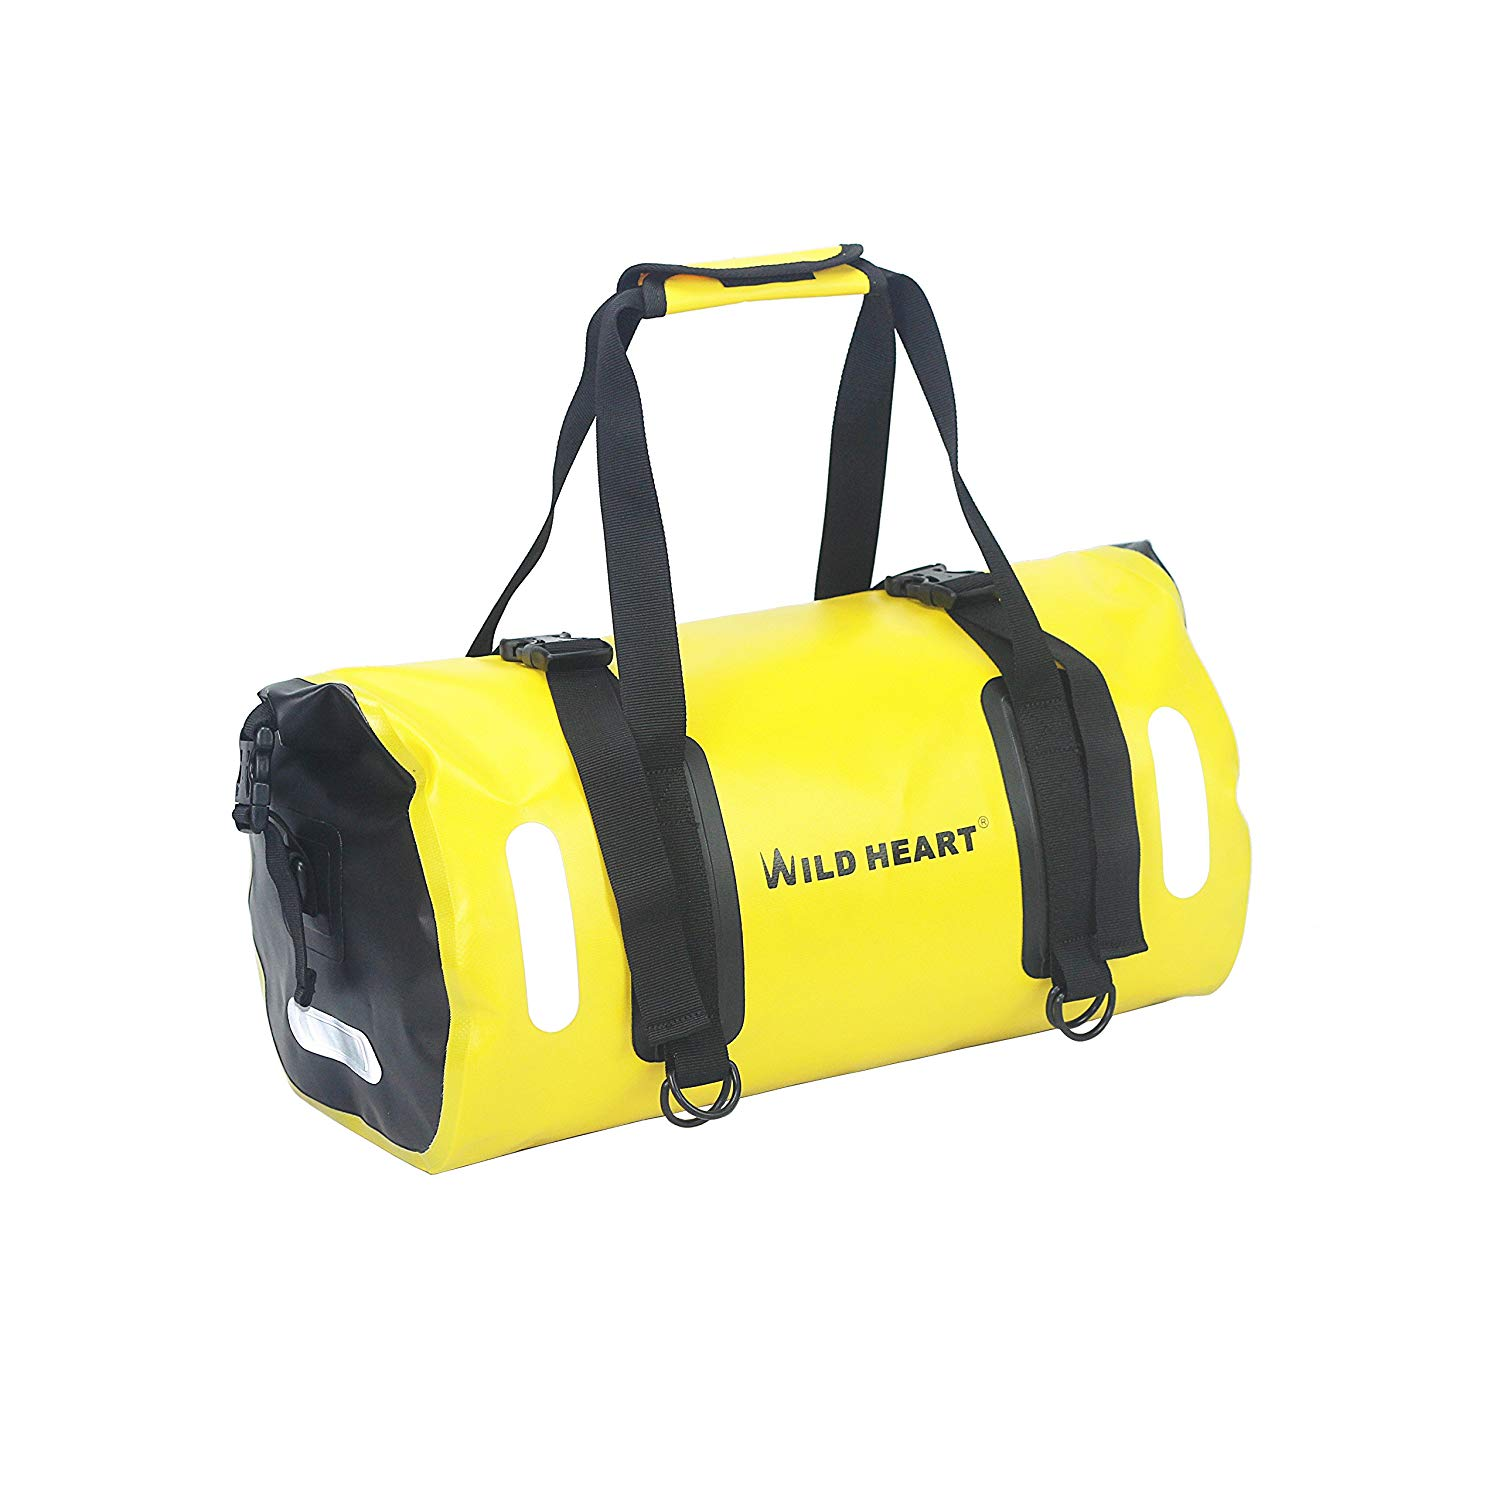 8900669a3 Get Quotations · WILD HEART Waterproof Bag Duffel Bag 20L for Kayaking,  Camping, Boating,Bycycle